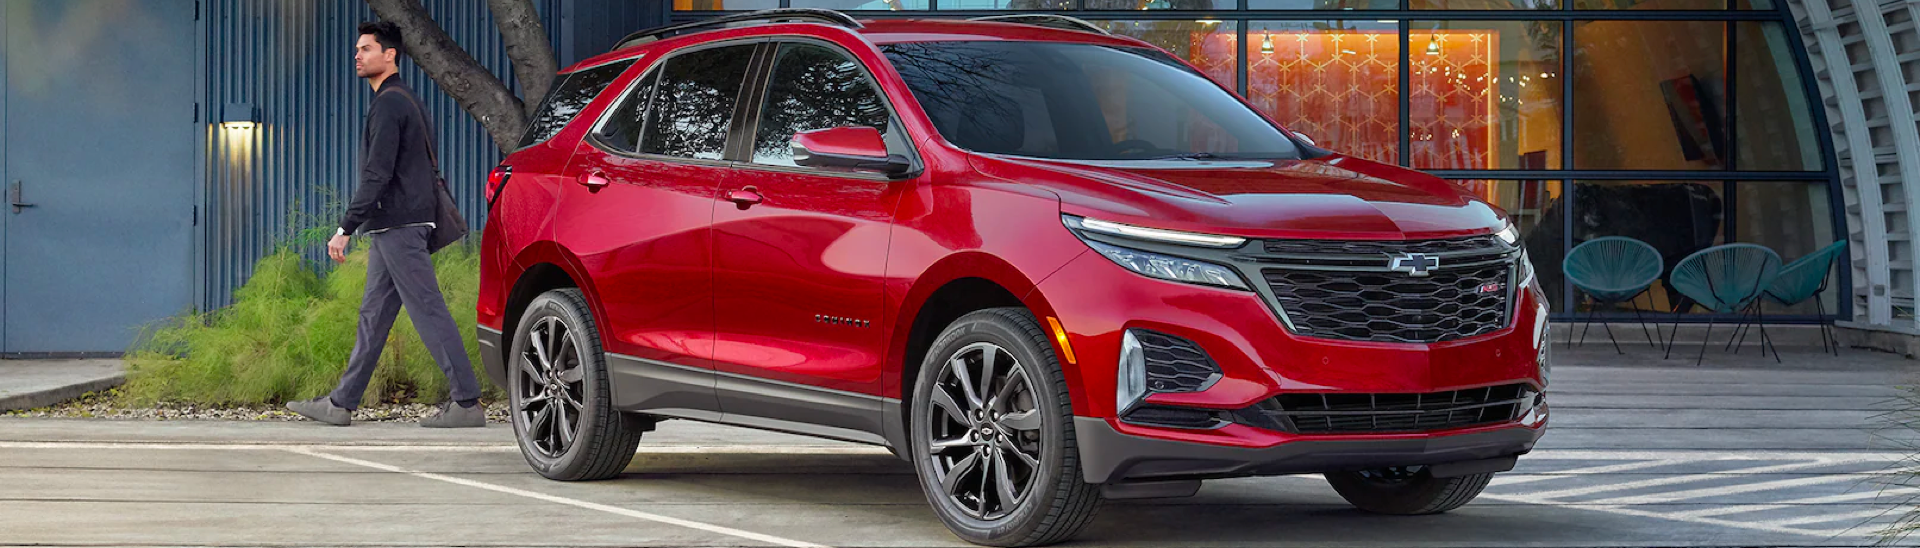 2022 Chevy Equinox RS in the color Cherry Red Tintcoat in front of a glass building.